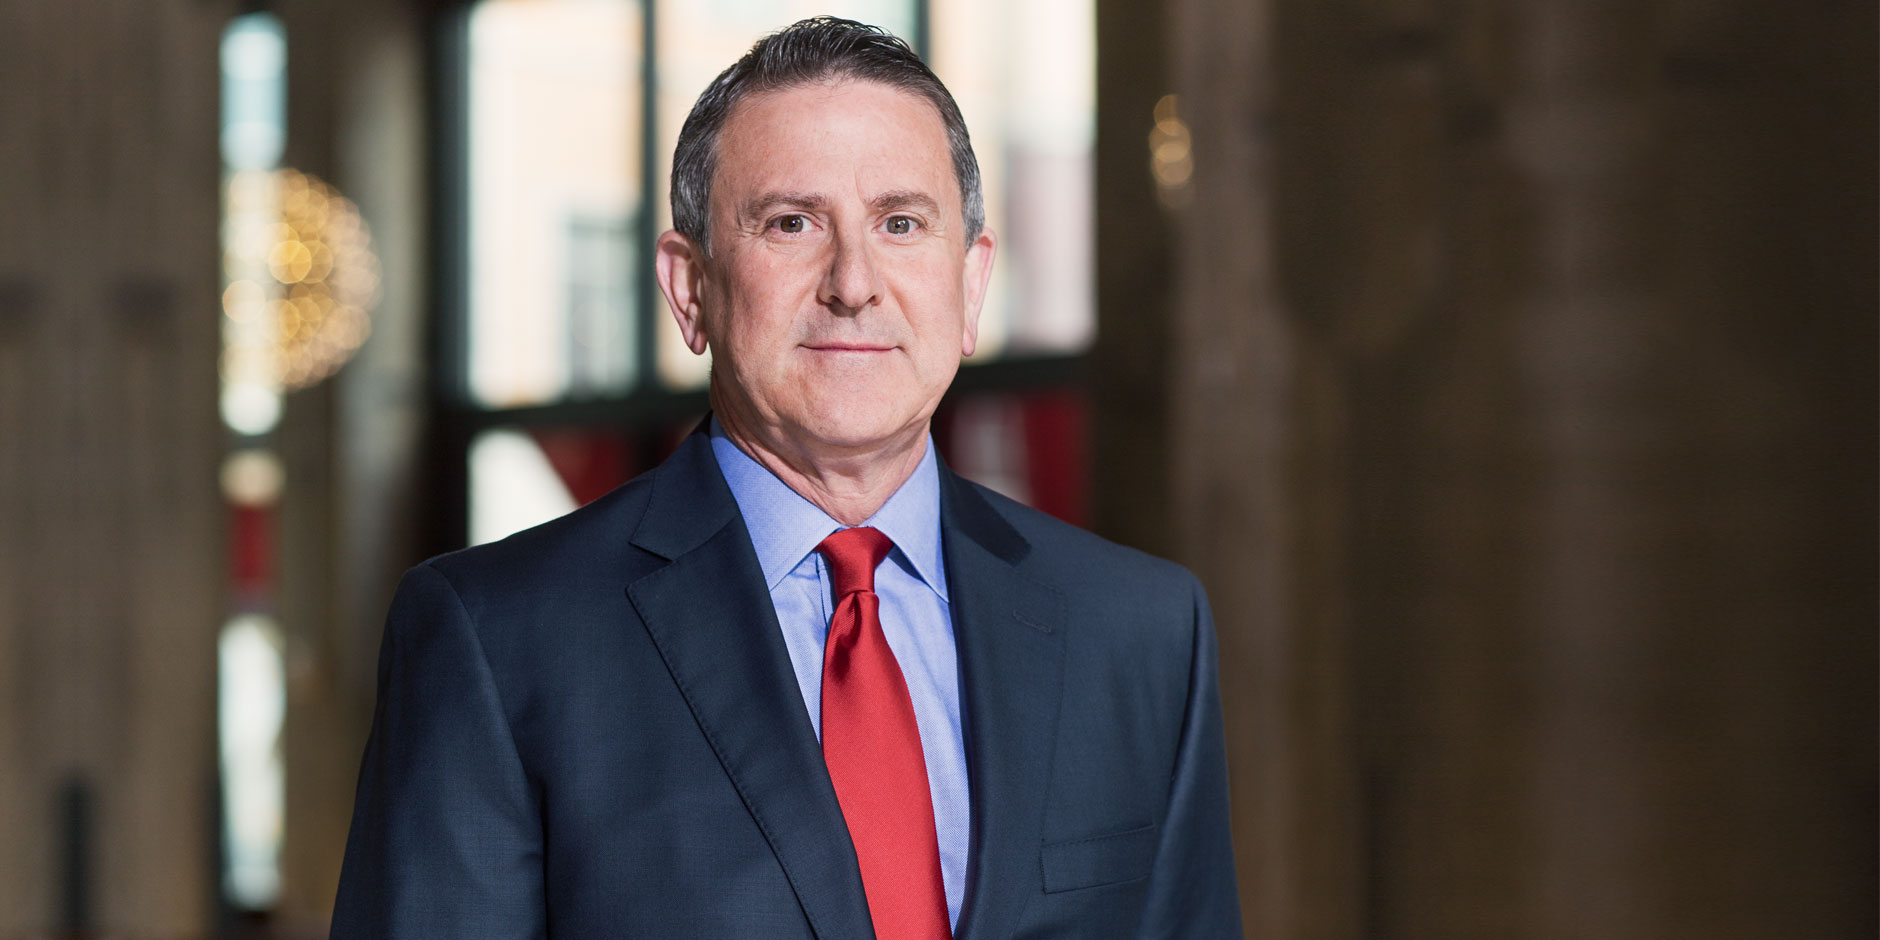 Target CEO Brian Cornell in a blue suit and red tie